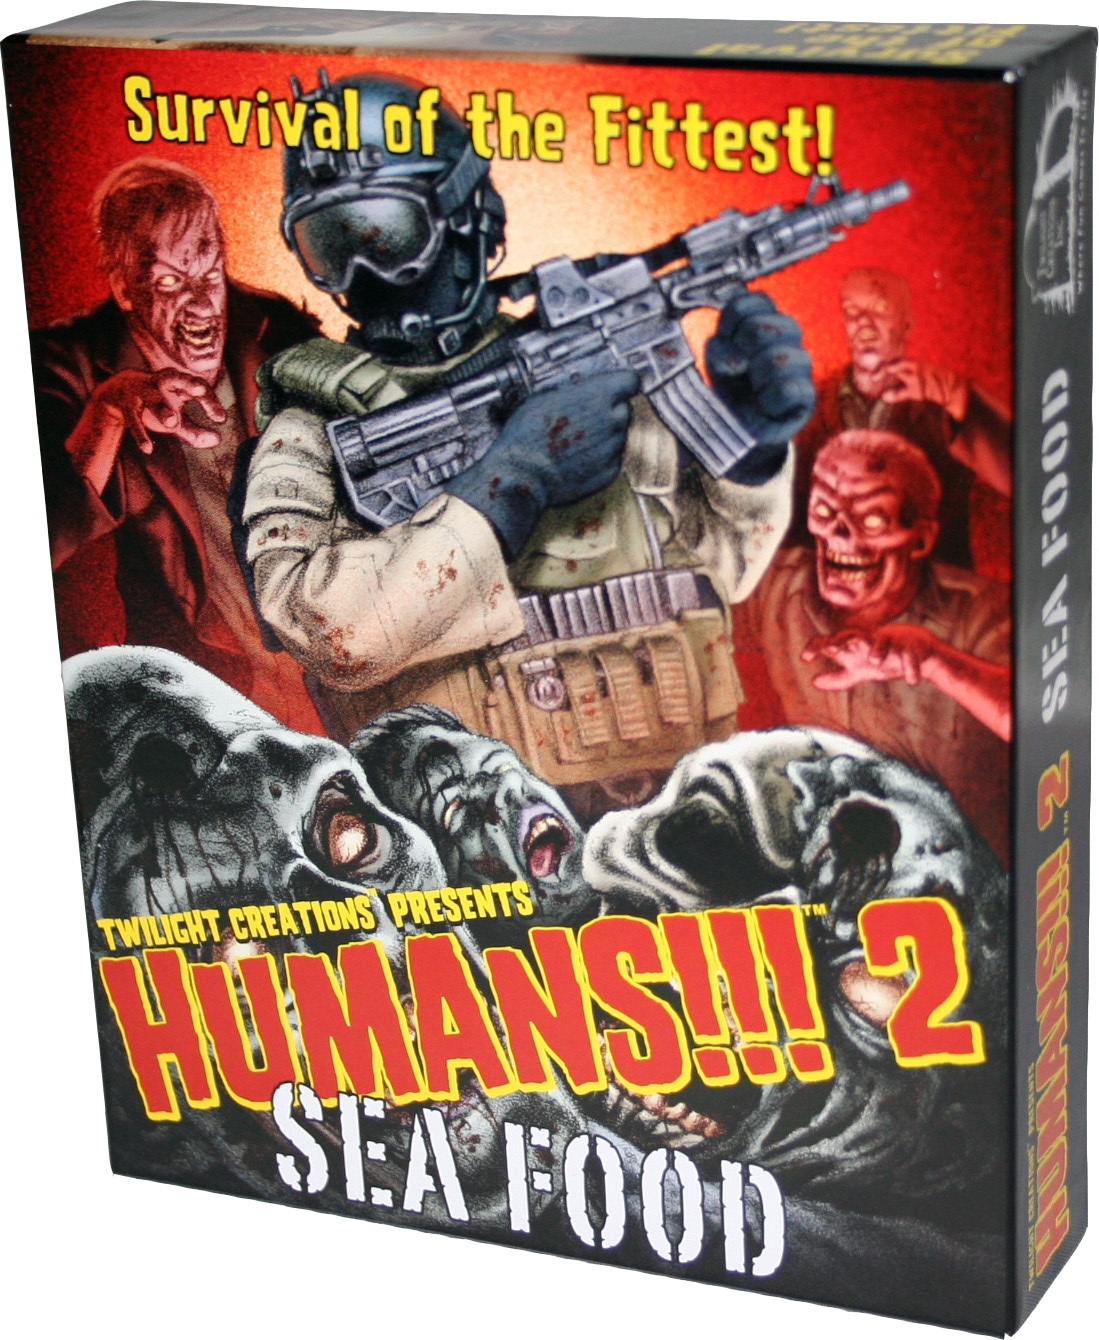 Humans!!!: 2 - Sea Food Box Front